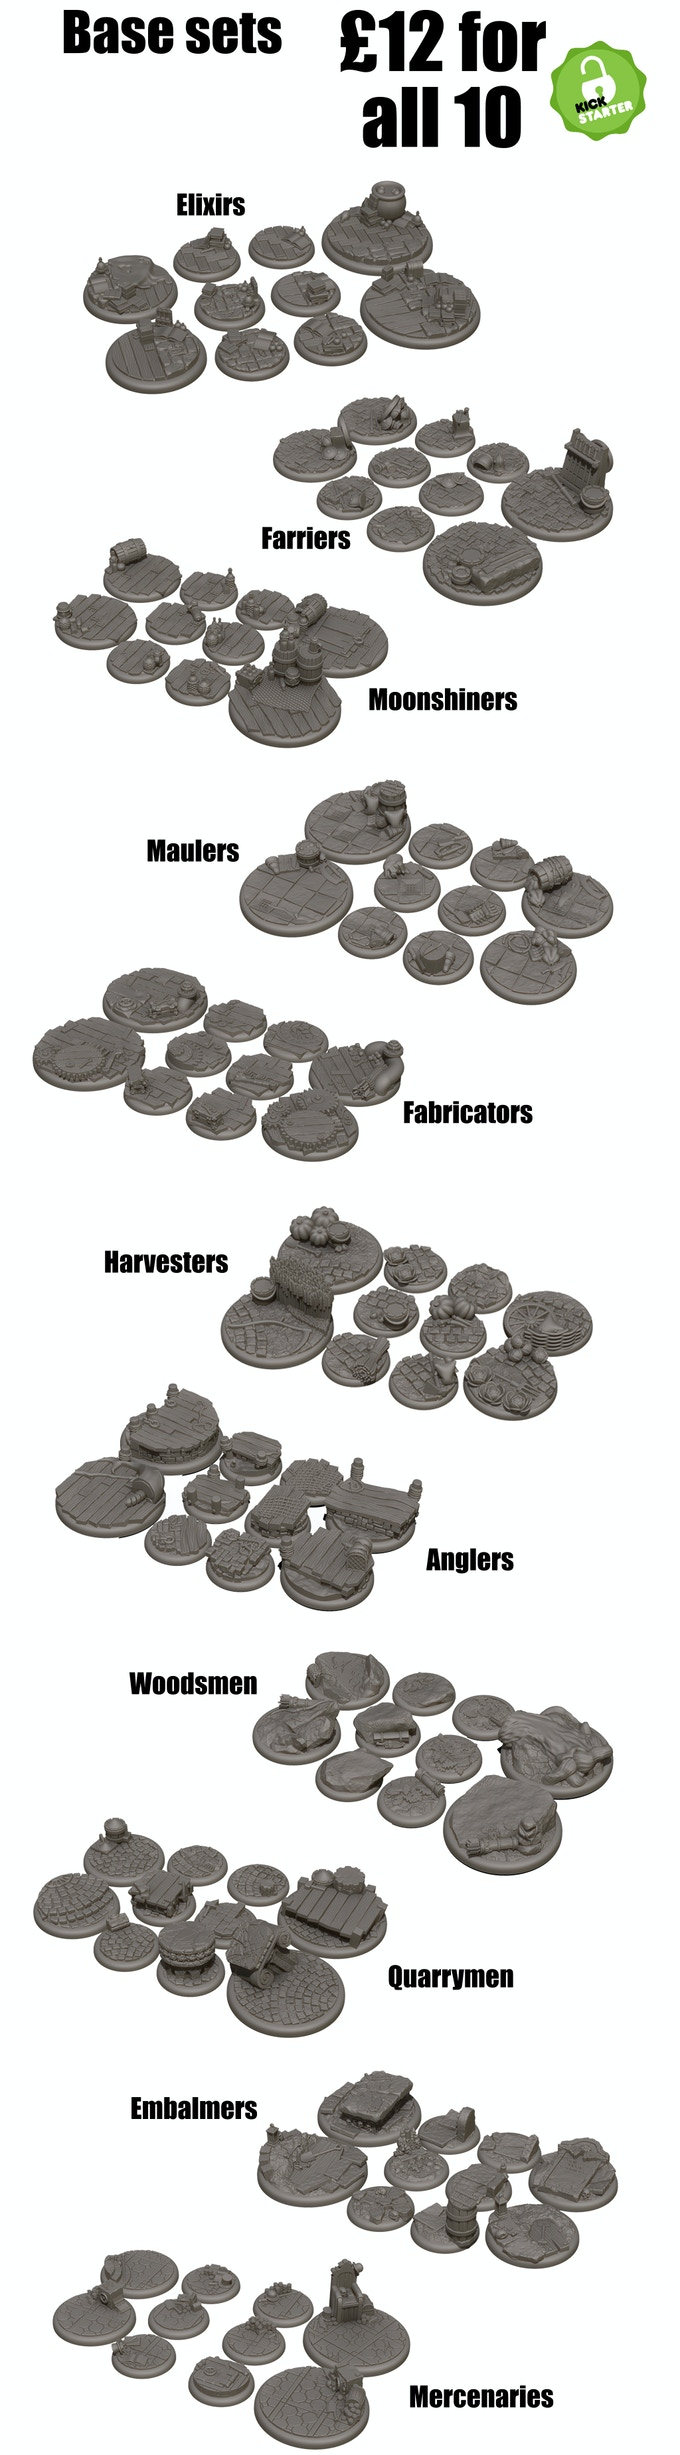 Enough Themed bases for 10 players in various sizes